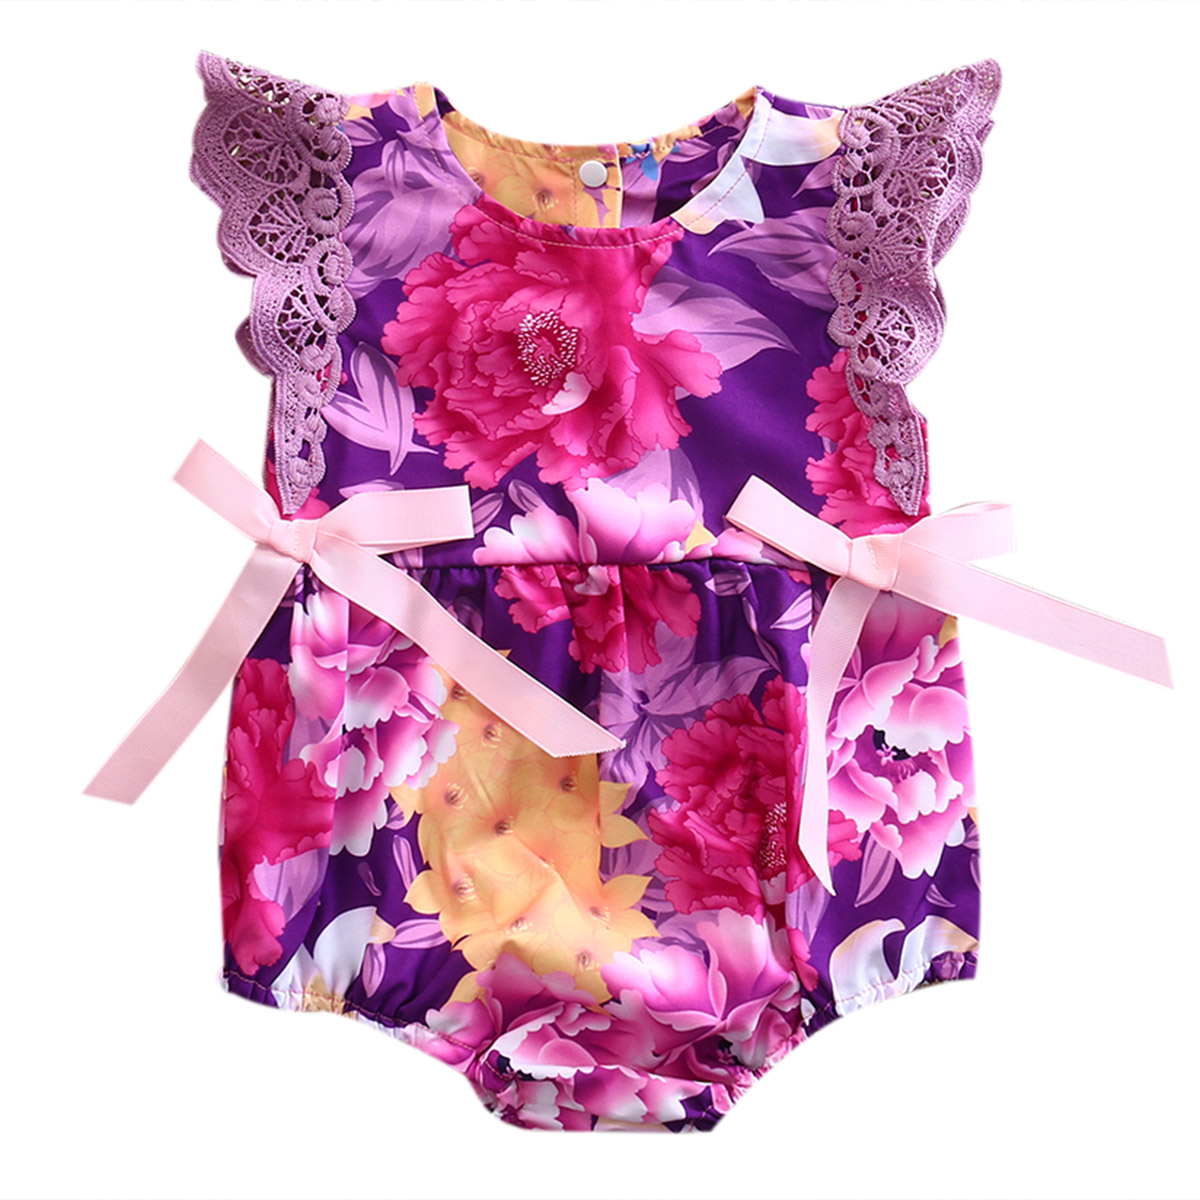 Cute Newborn Baby Girl Lace Floral Romper 2017 Summer Infant Bebes Toddler Kids Jumpsuit Outfits Sunsuit Children Clothes 0-24M 2017 new adorable summer games infant newborn baby boy girl romper jumpsuit outfits clothes clothing